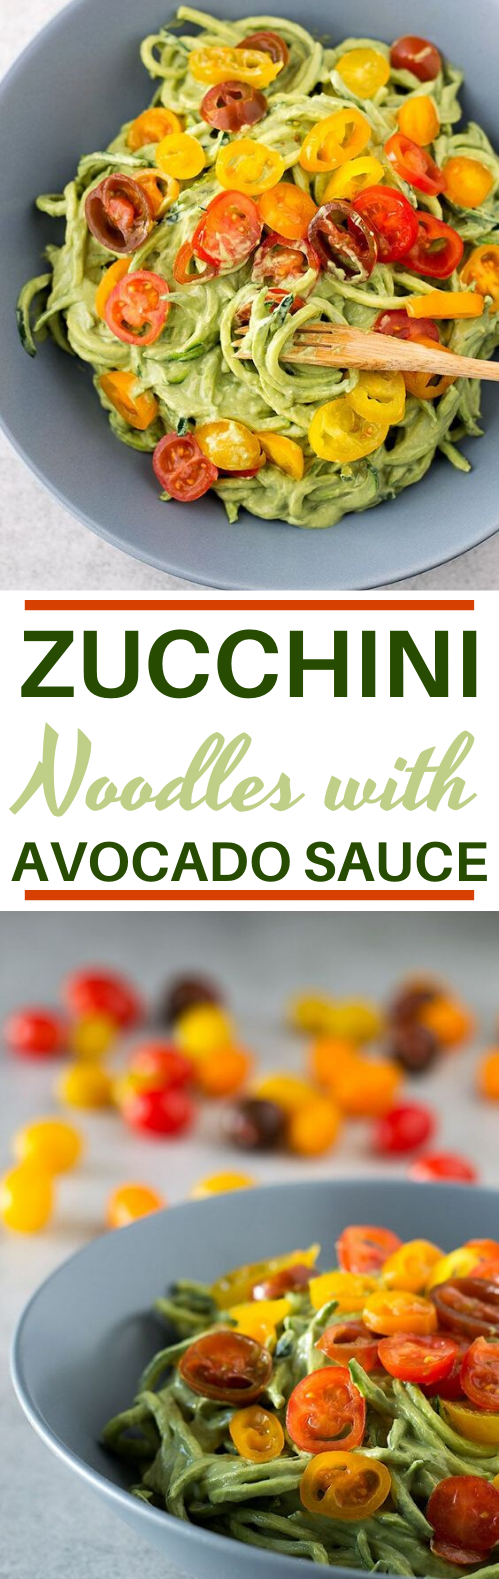 Zucchini Noodles with Avocado Sauce #vegan #dinner #glutenfree #plantbased #pasta